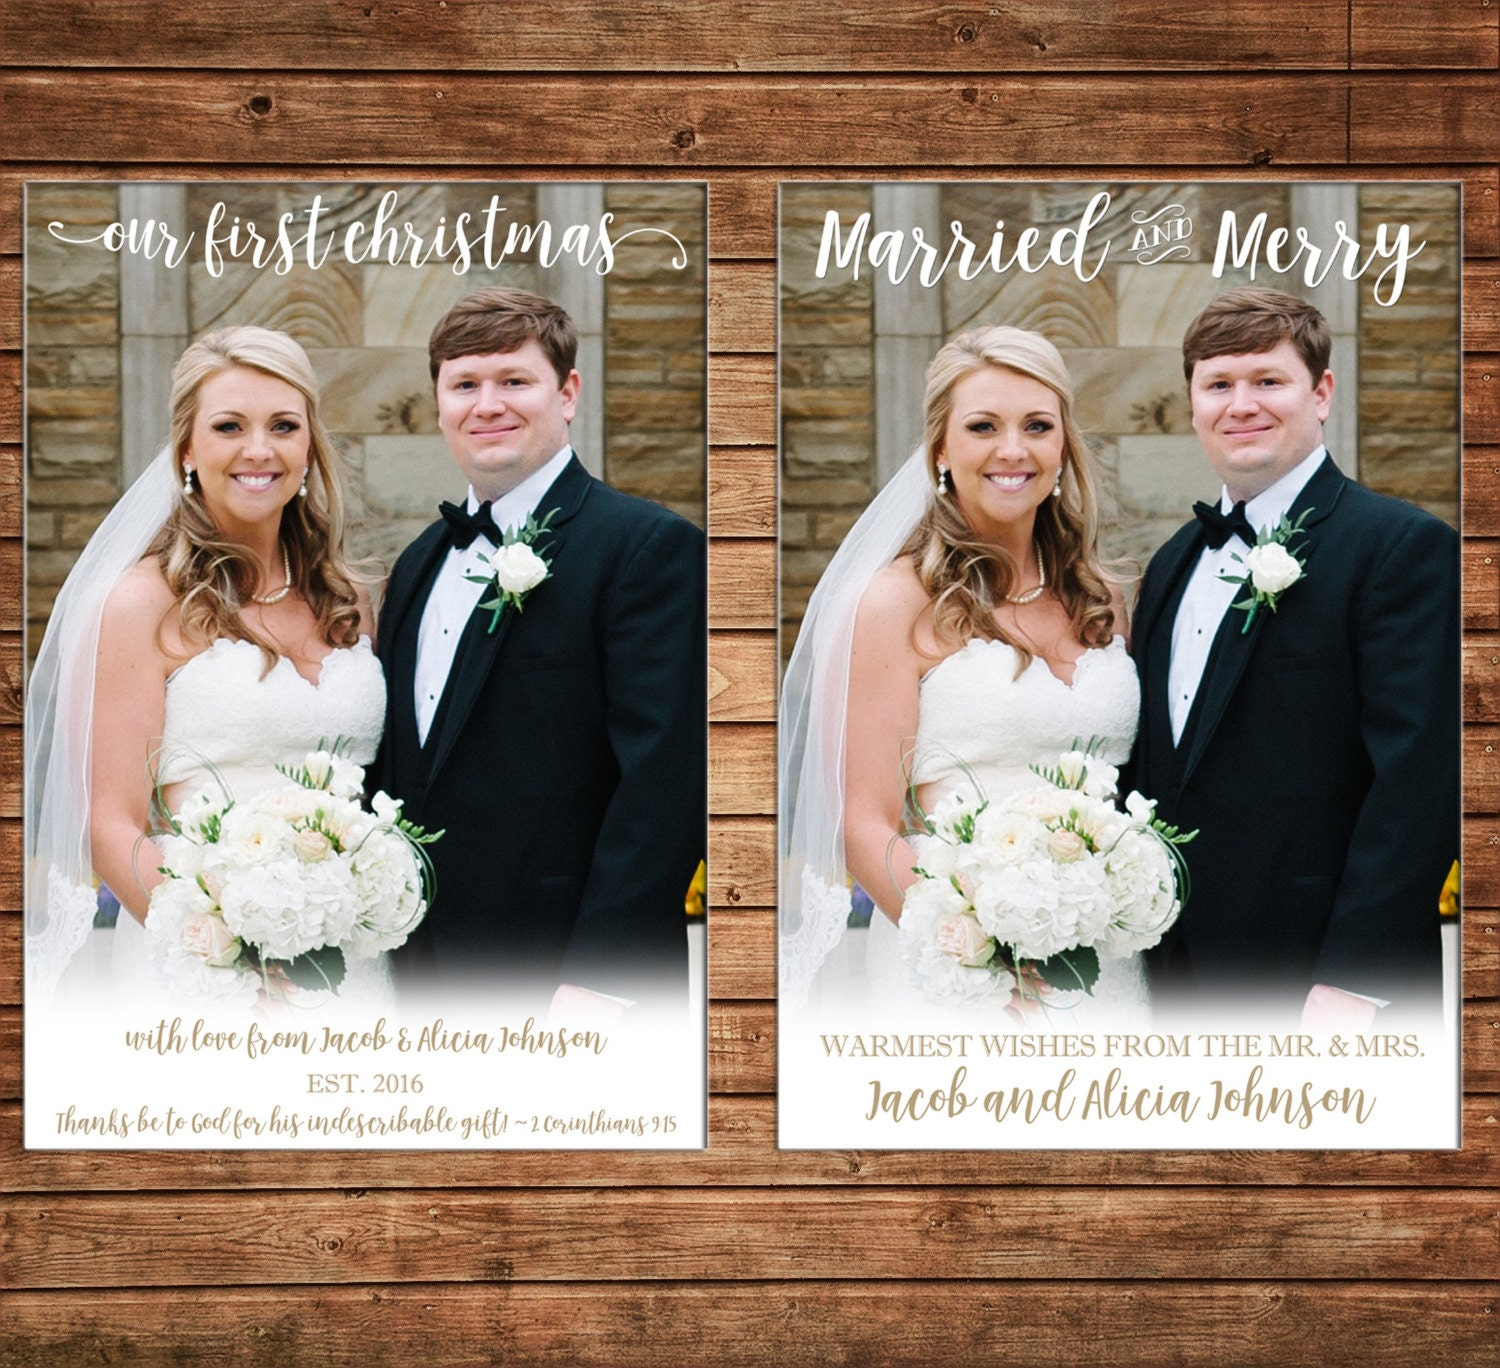 Christmas Holiday Photo Card First Christmas Married Merry - Can ...